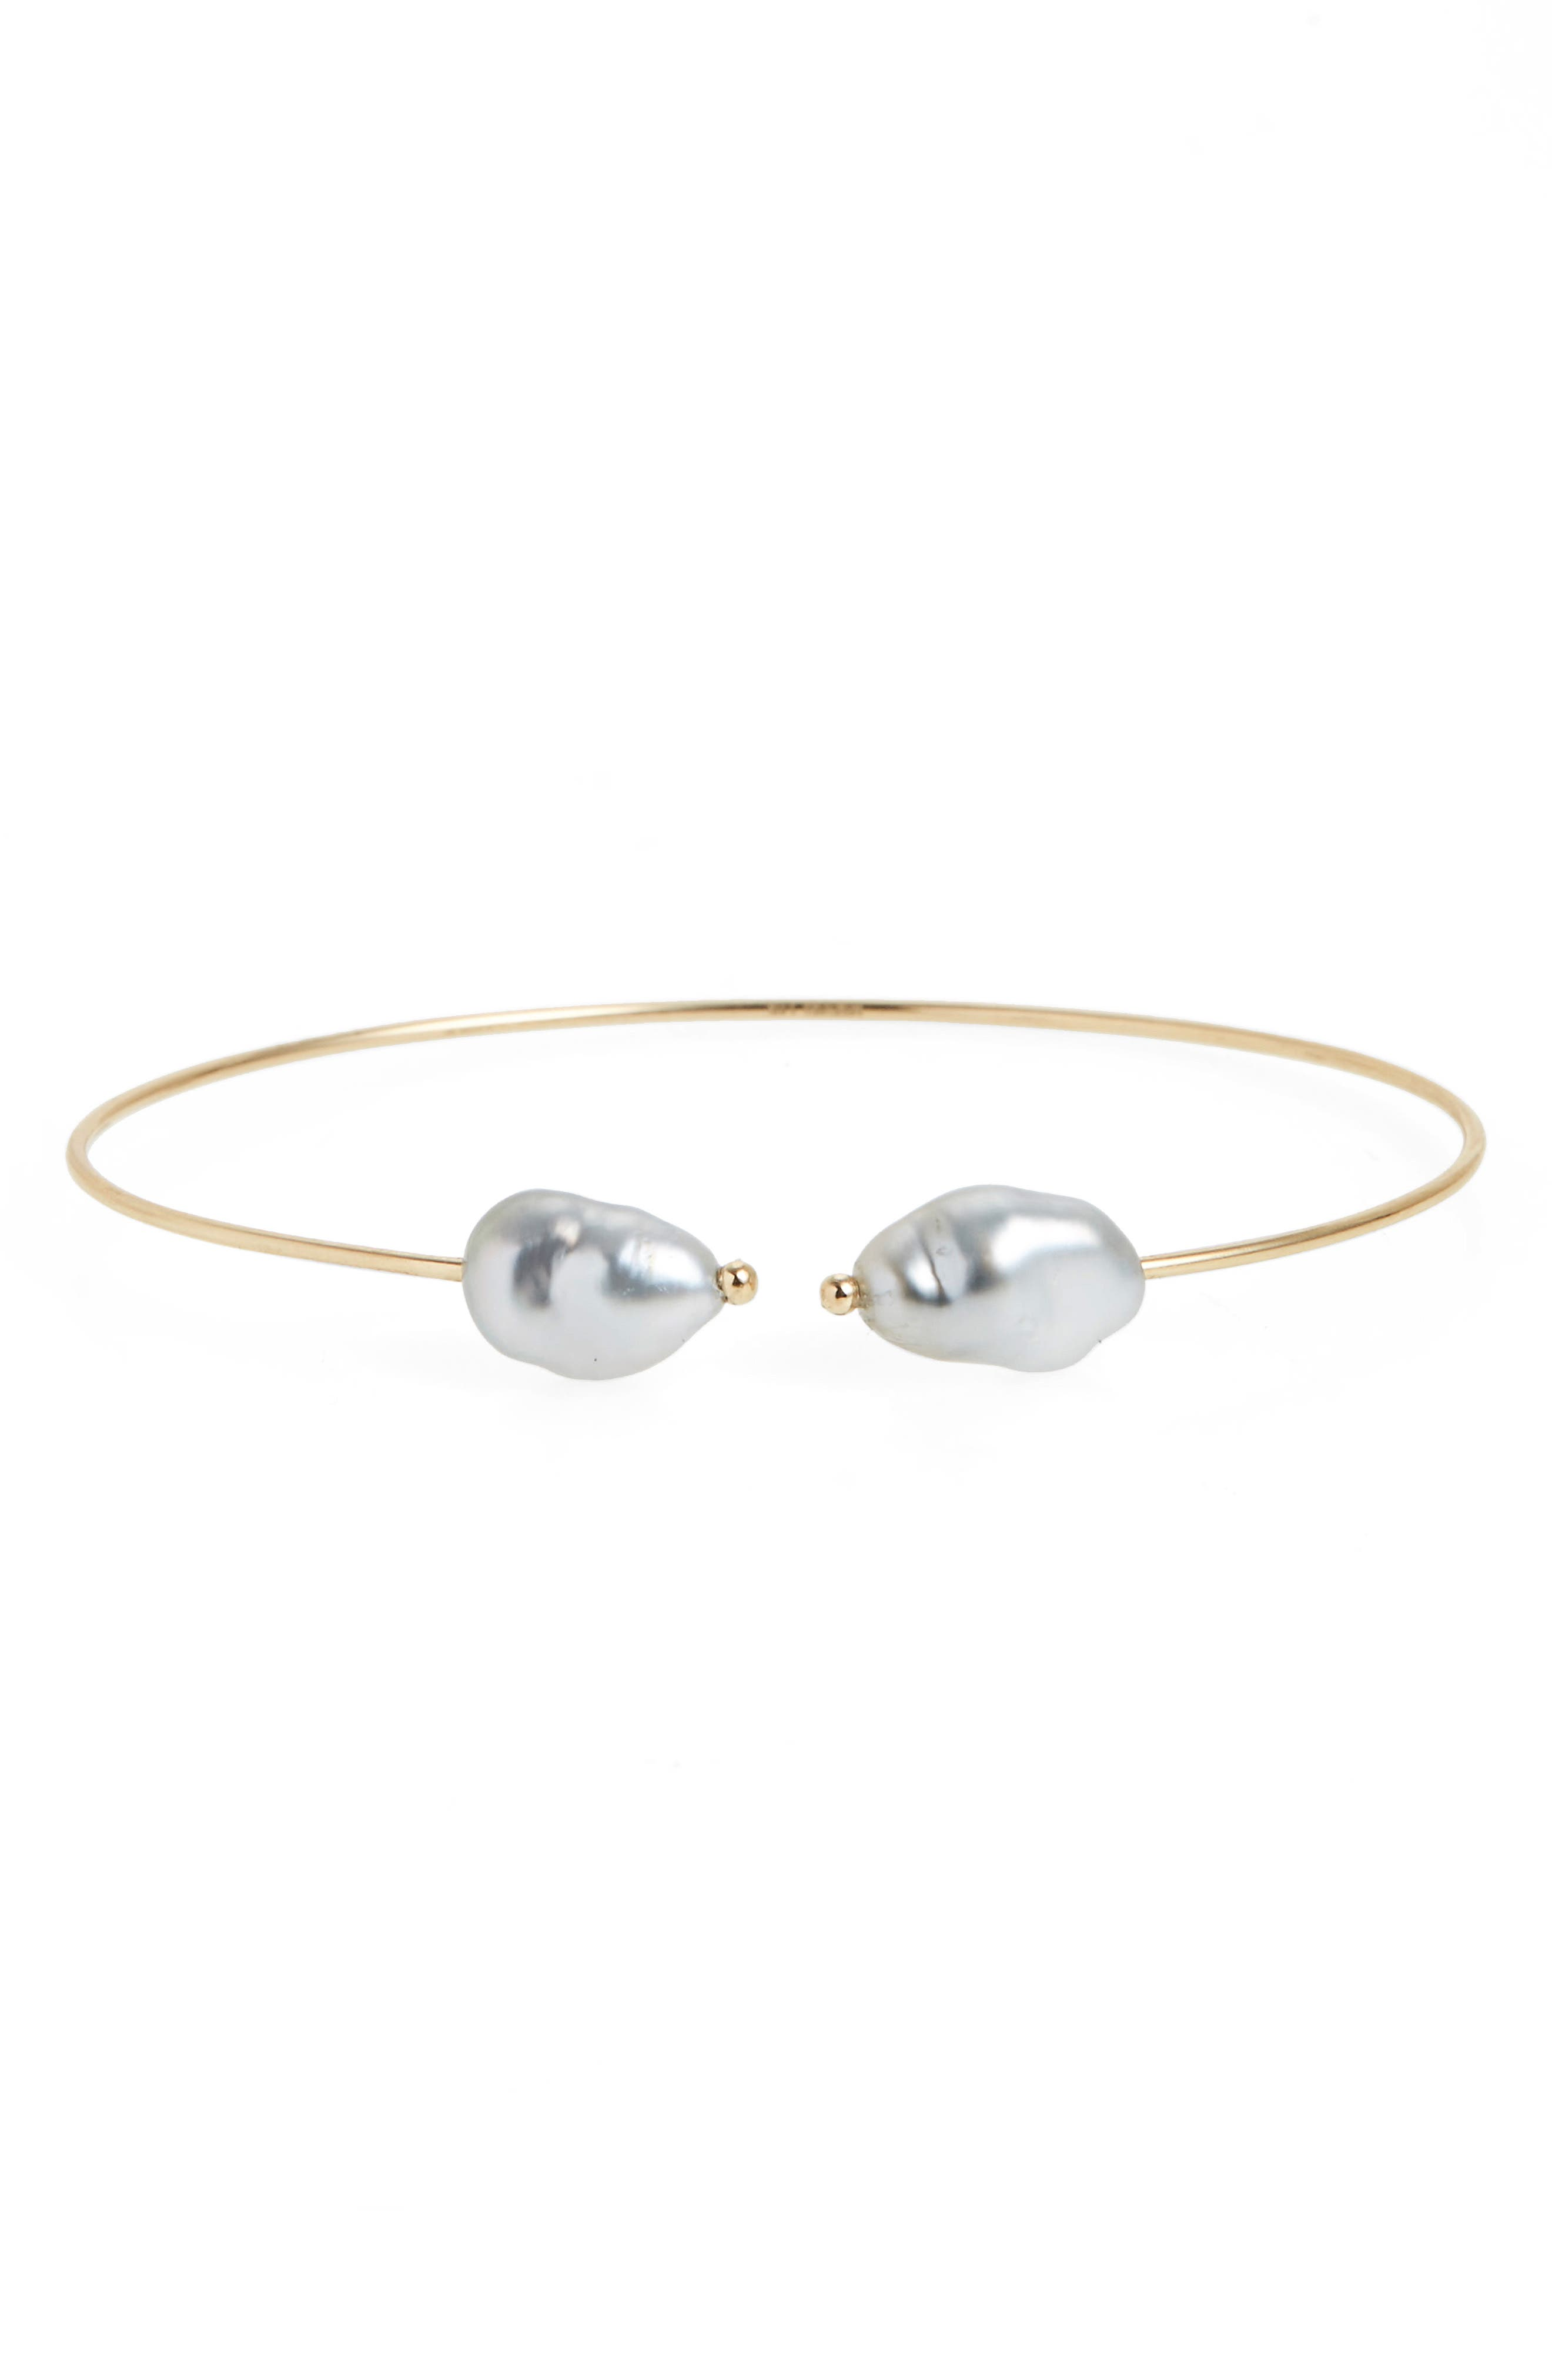 Keshi Pearl Station Cuff,                         Main,                         color, Yellow Gold/ Grey Pearl